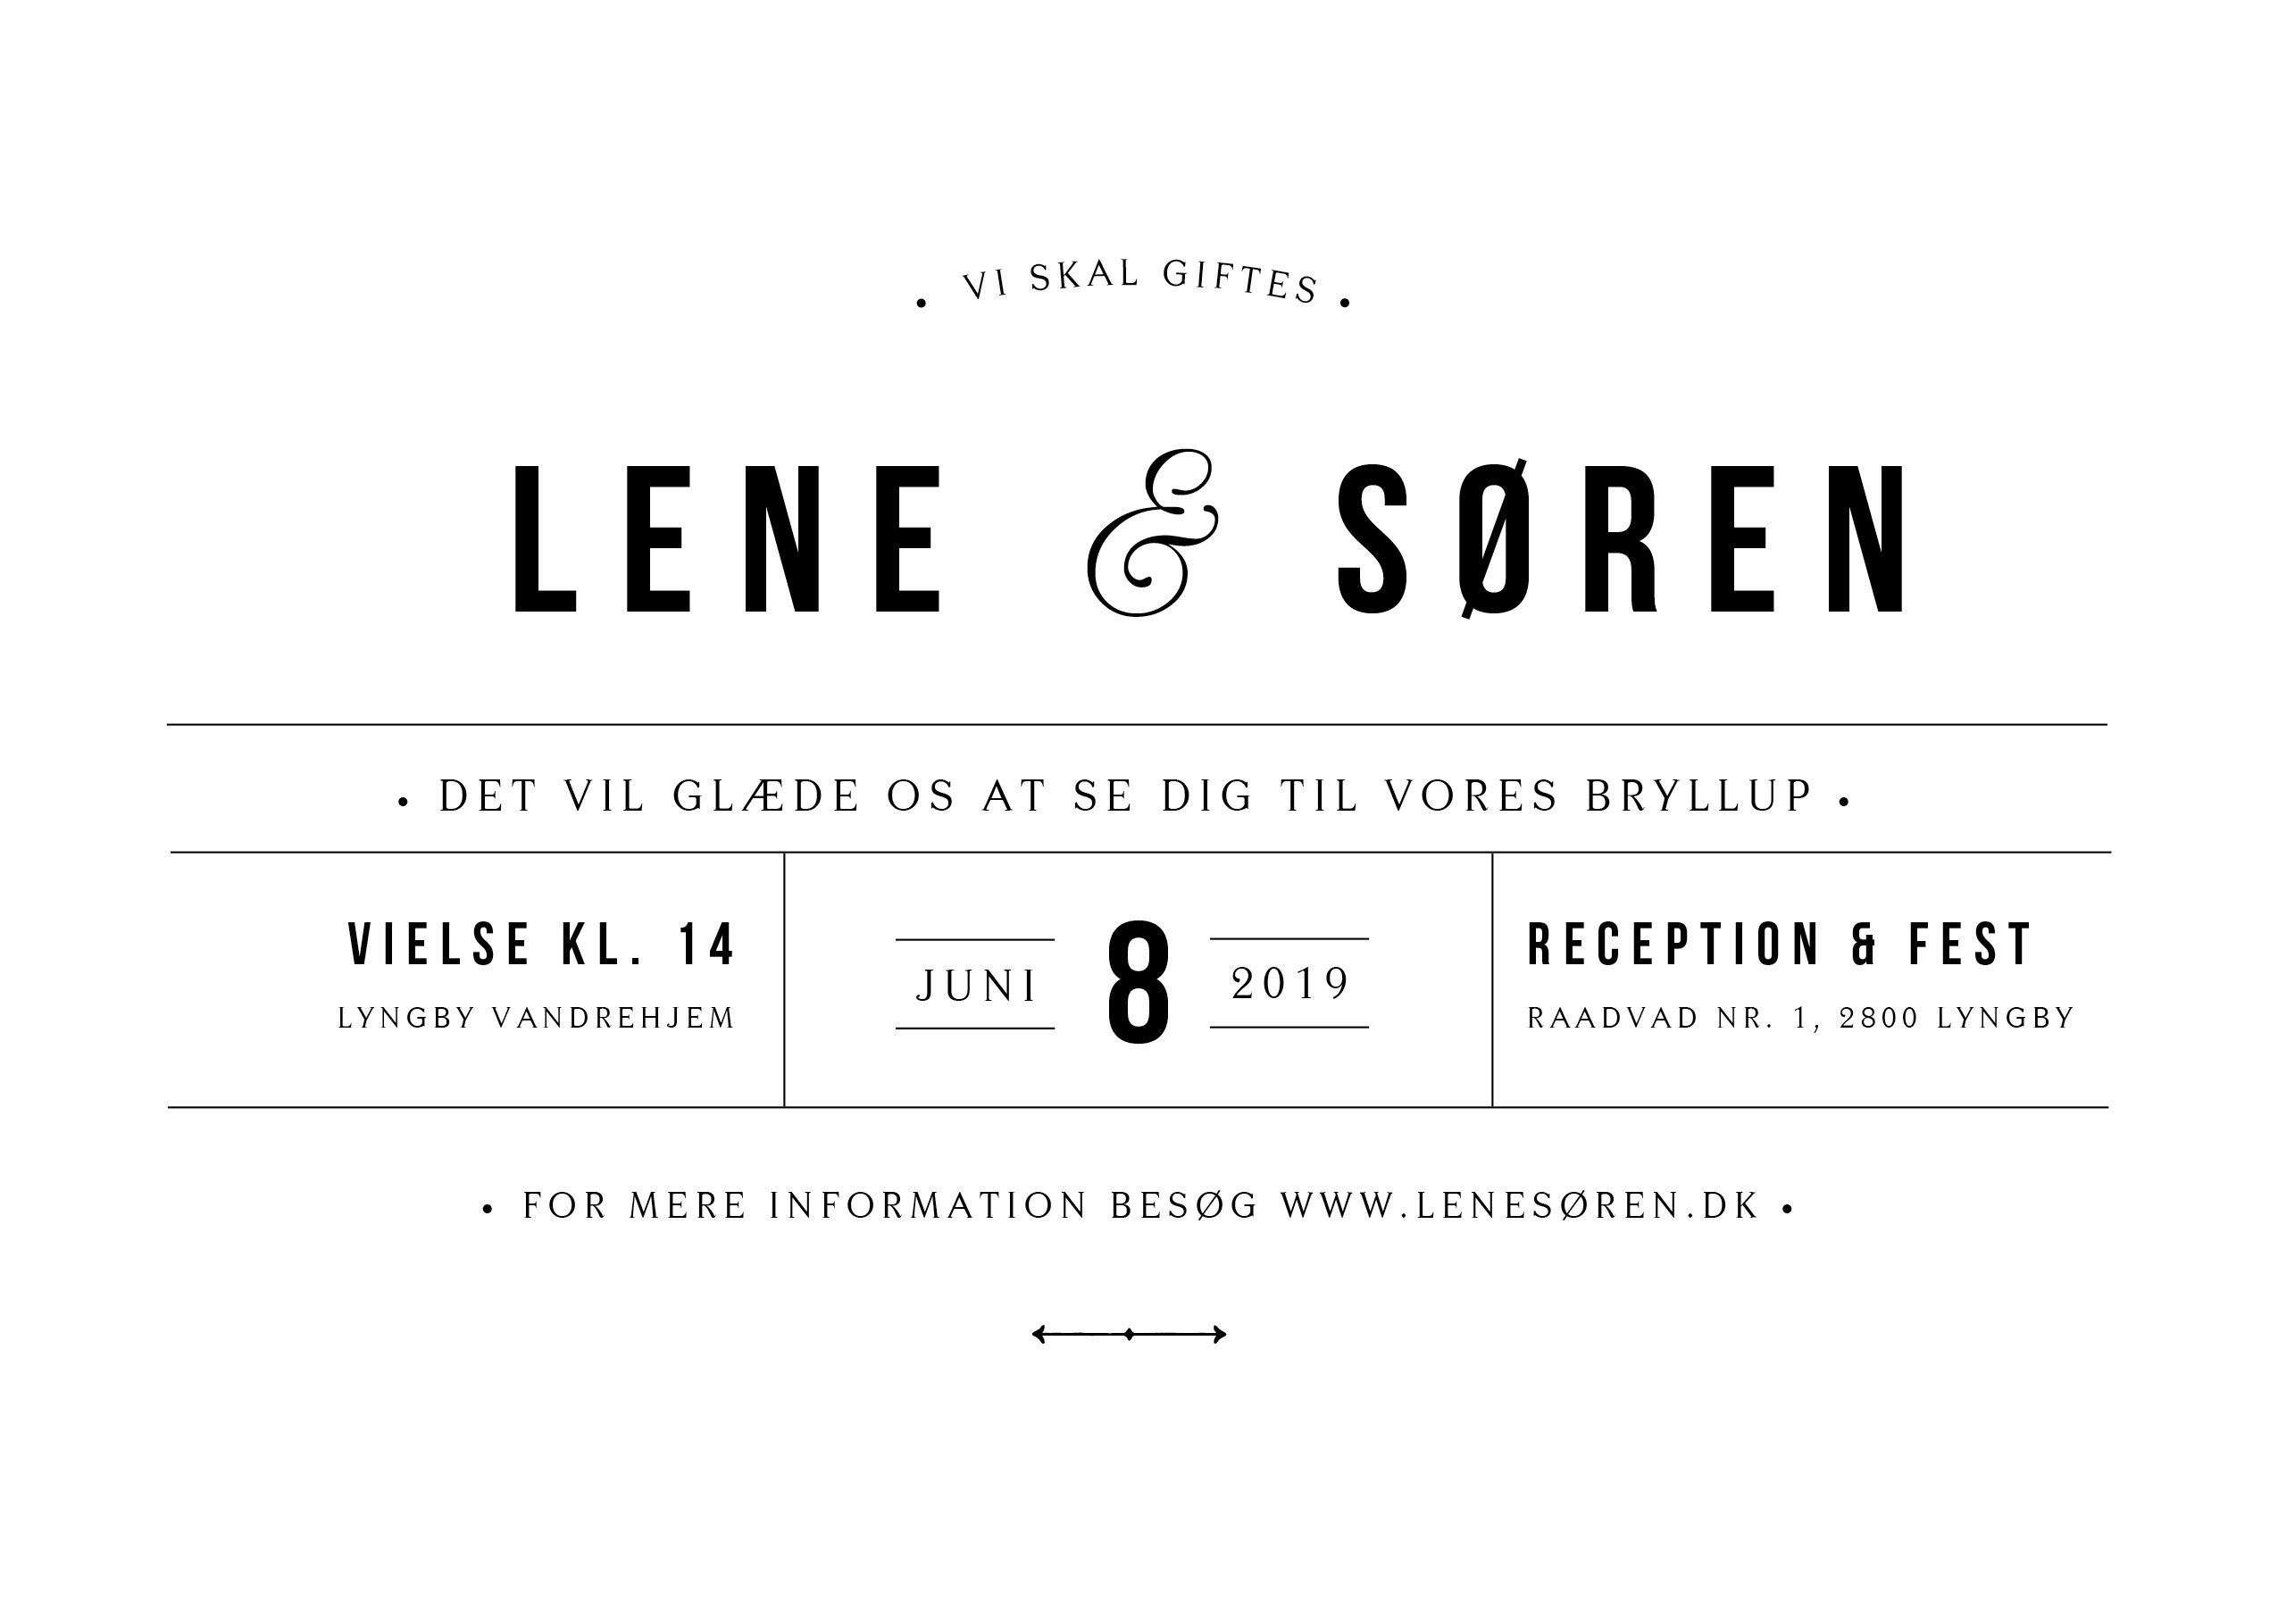 /site/resources/images/card-photos/card-thumbnails/Lene & Søren/8d7a658f8593ef08e7c0d2046750218f_front_thumb.jpg